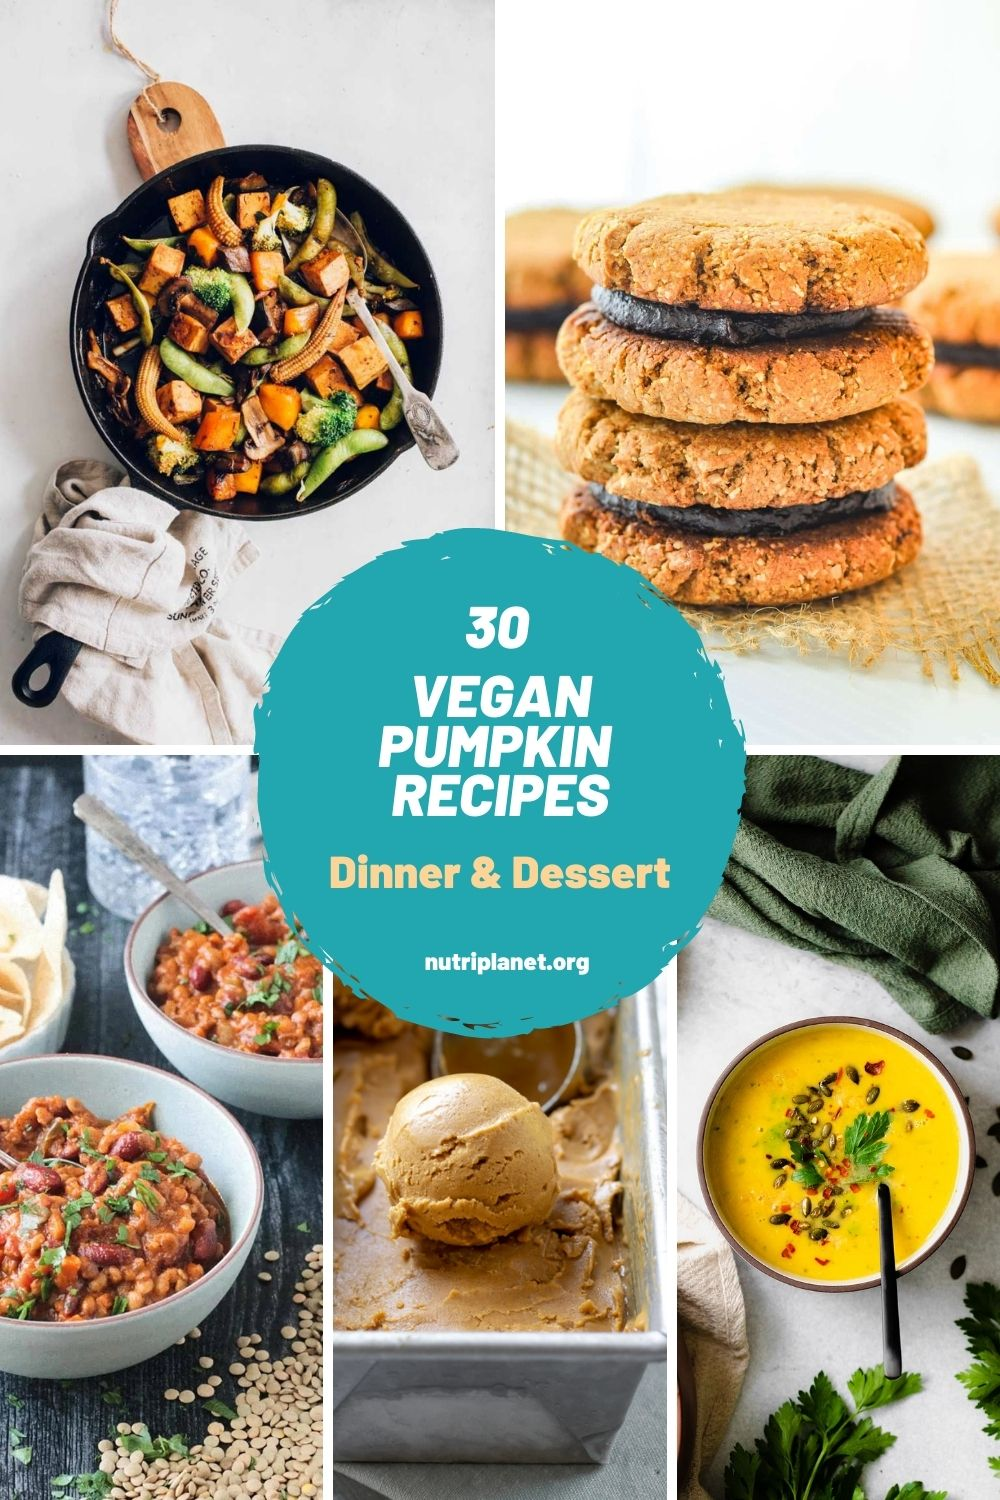 Learn how to make healthy vegan pumpkin recipes, both for dinner and dessert. From pumpkin curry and soups to pumpkin pie, blondies, brownies and ice cream.